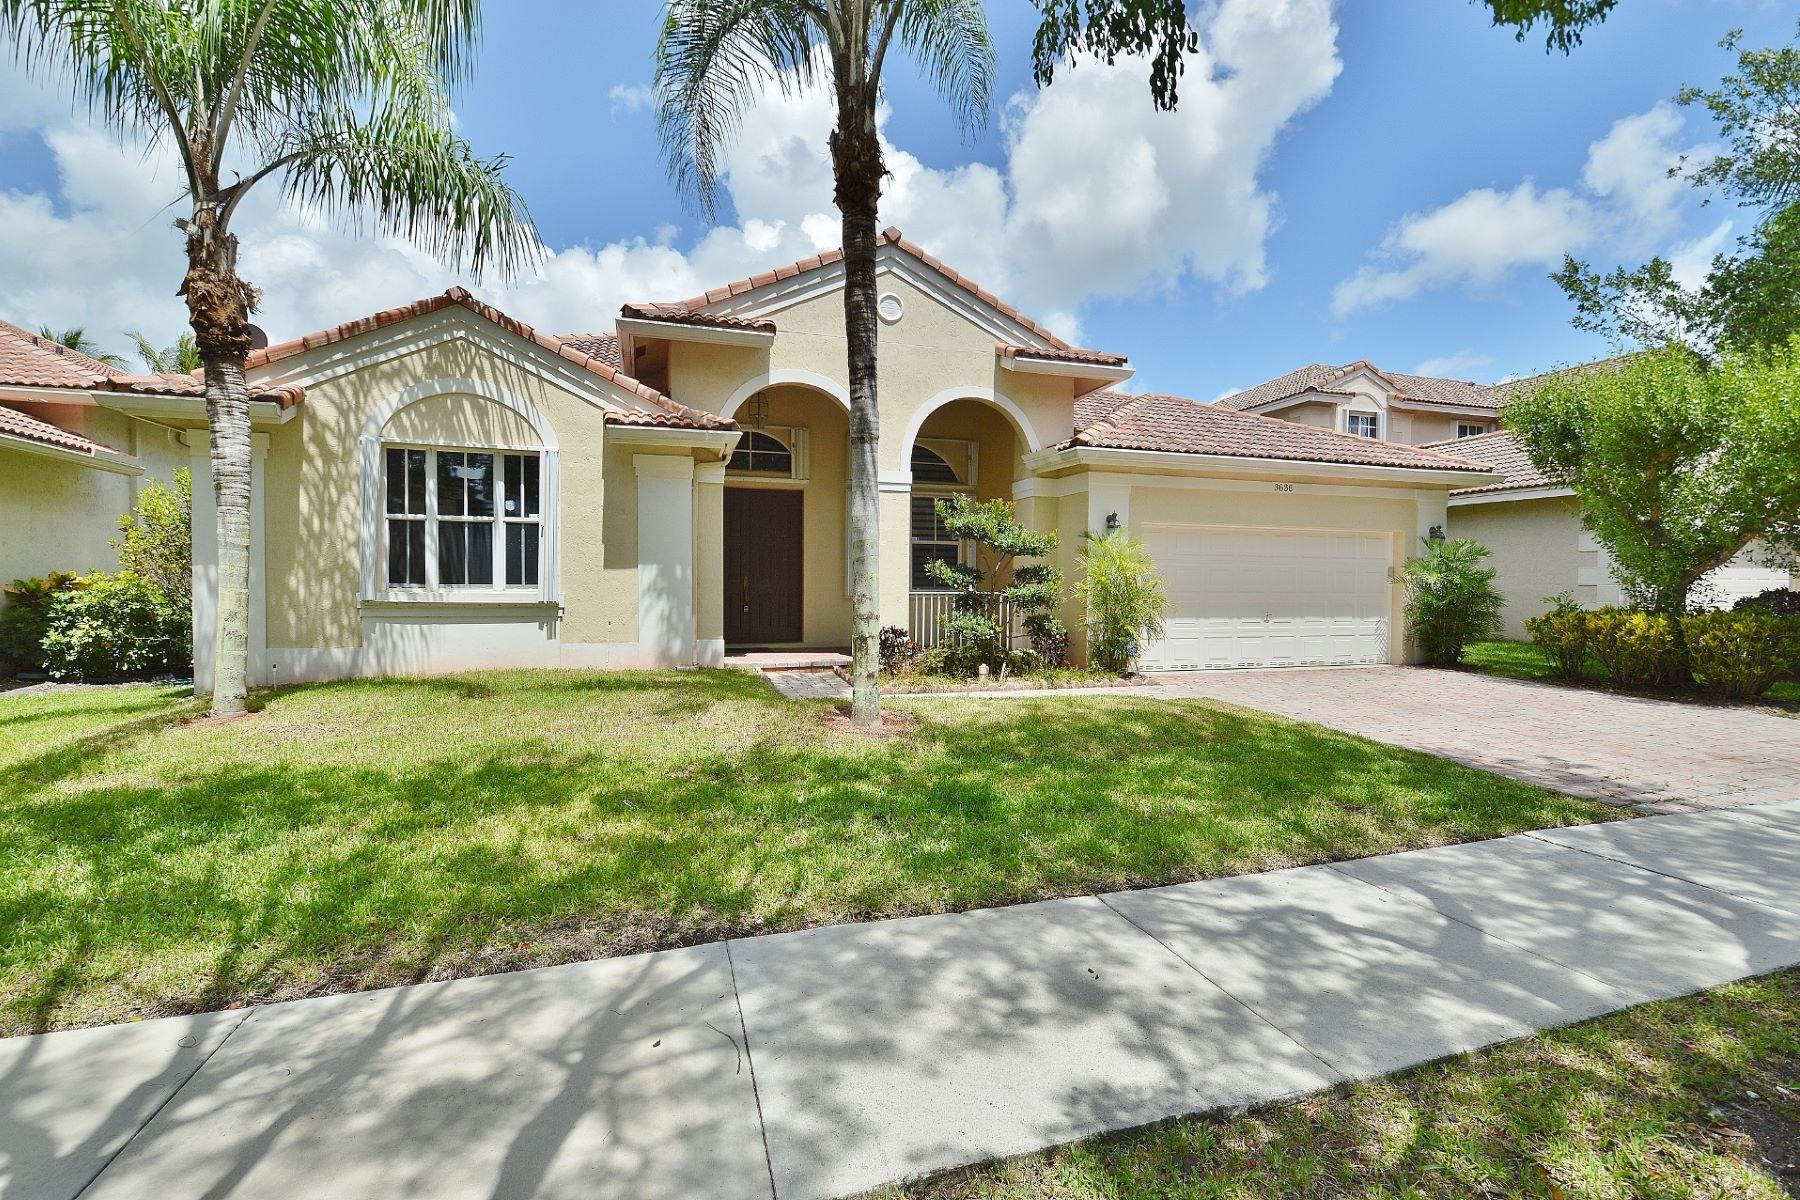 Single Family Home for Sale at 3636 Heron Ridge Ln. Weston, Florida 33331 United States